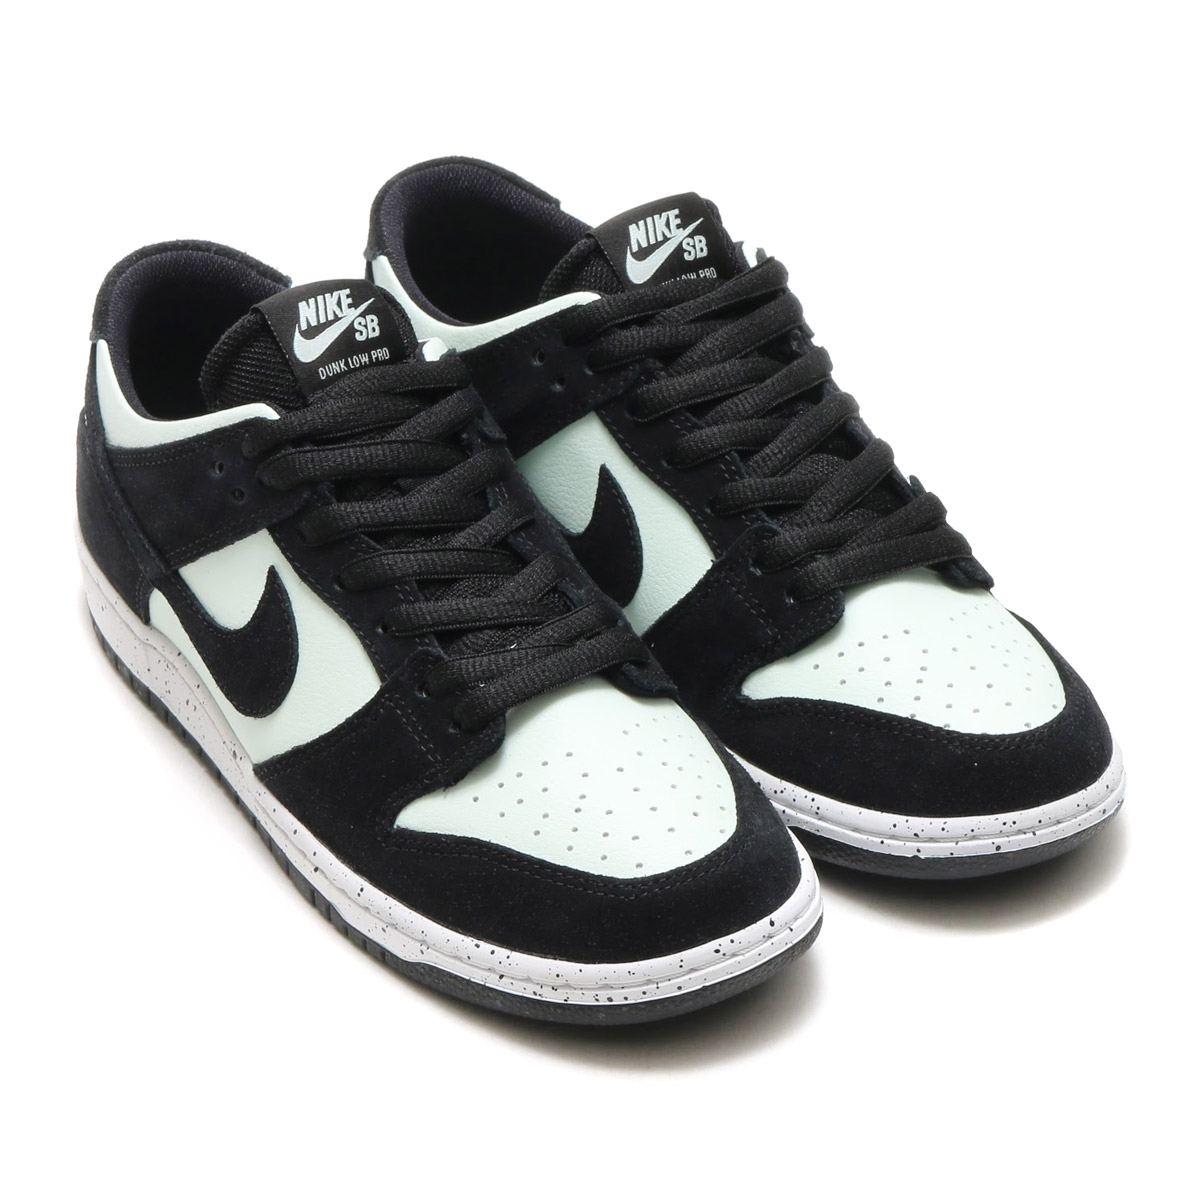 super popular 3d21f f26a6 I change a design for Nike SB Pro スケーターアイショッド wear. I direct the dunk-style  that is Aiko Nic. I realize superior board control and shock ...